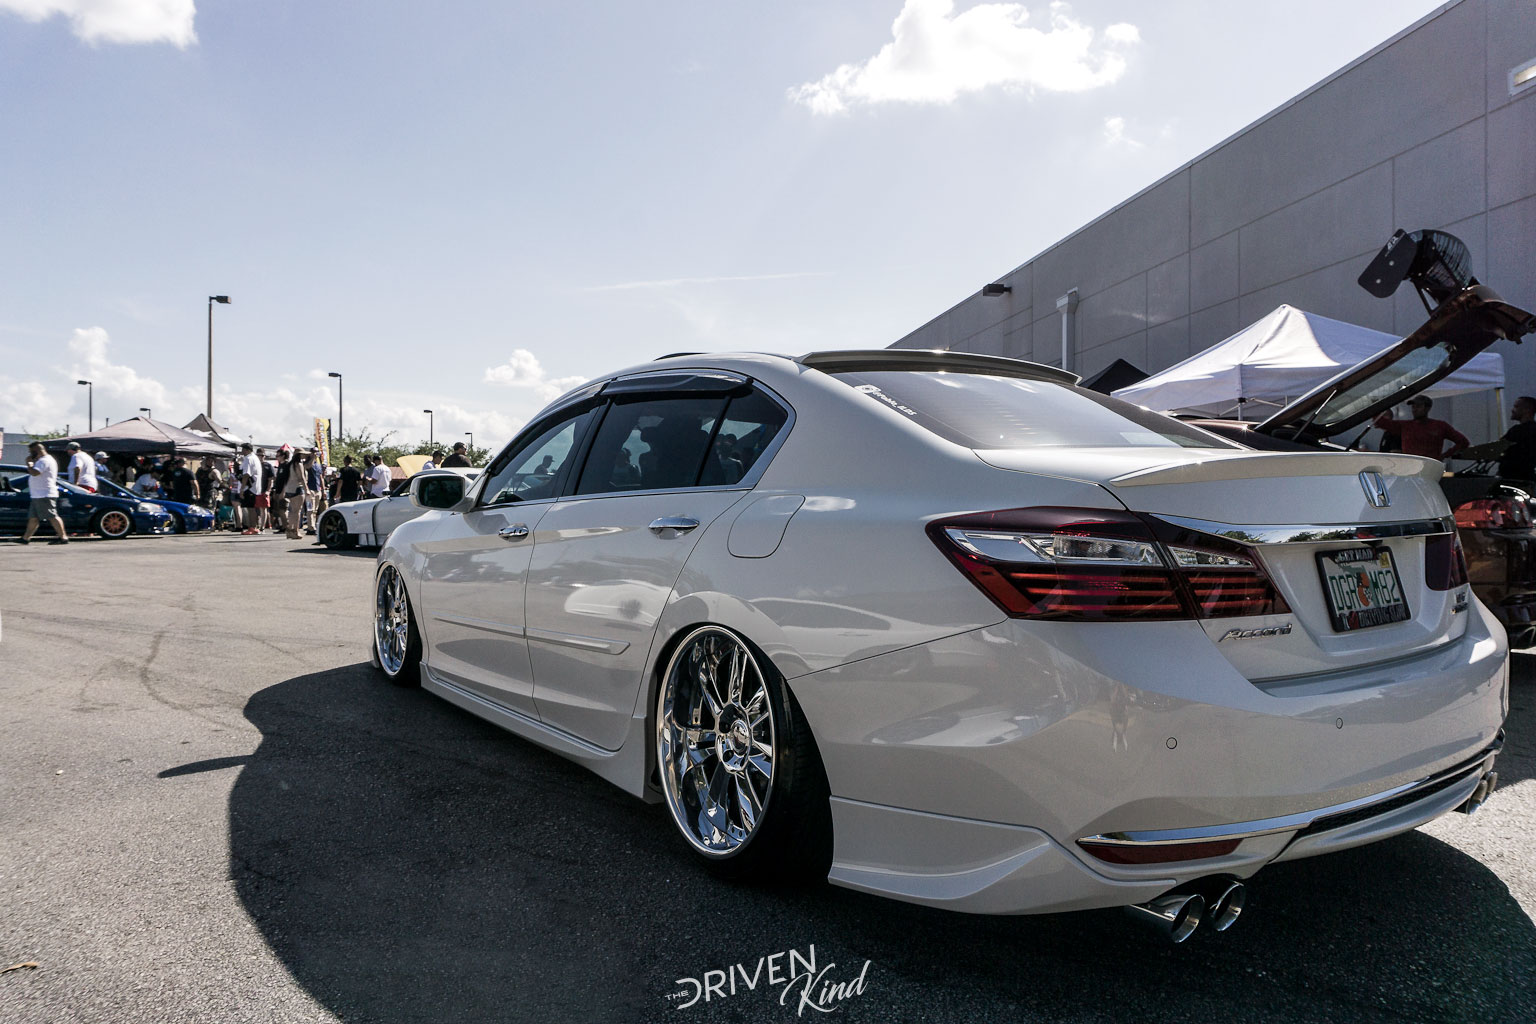 East Coast Import Car Shows